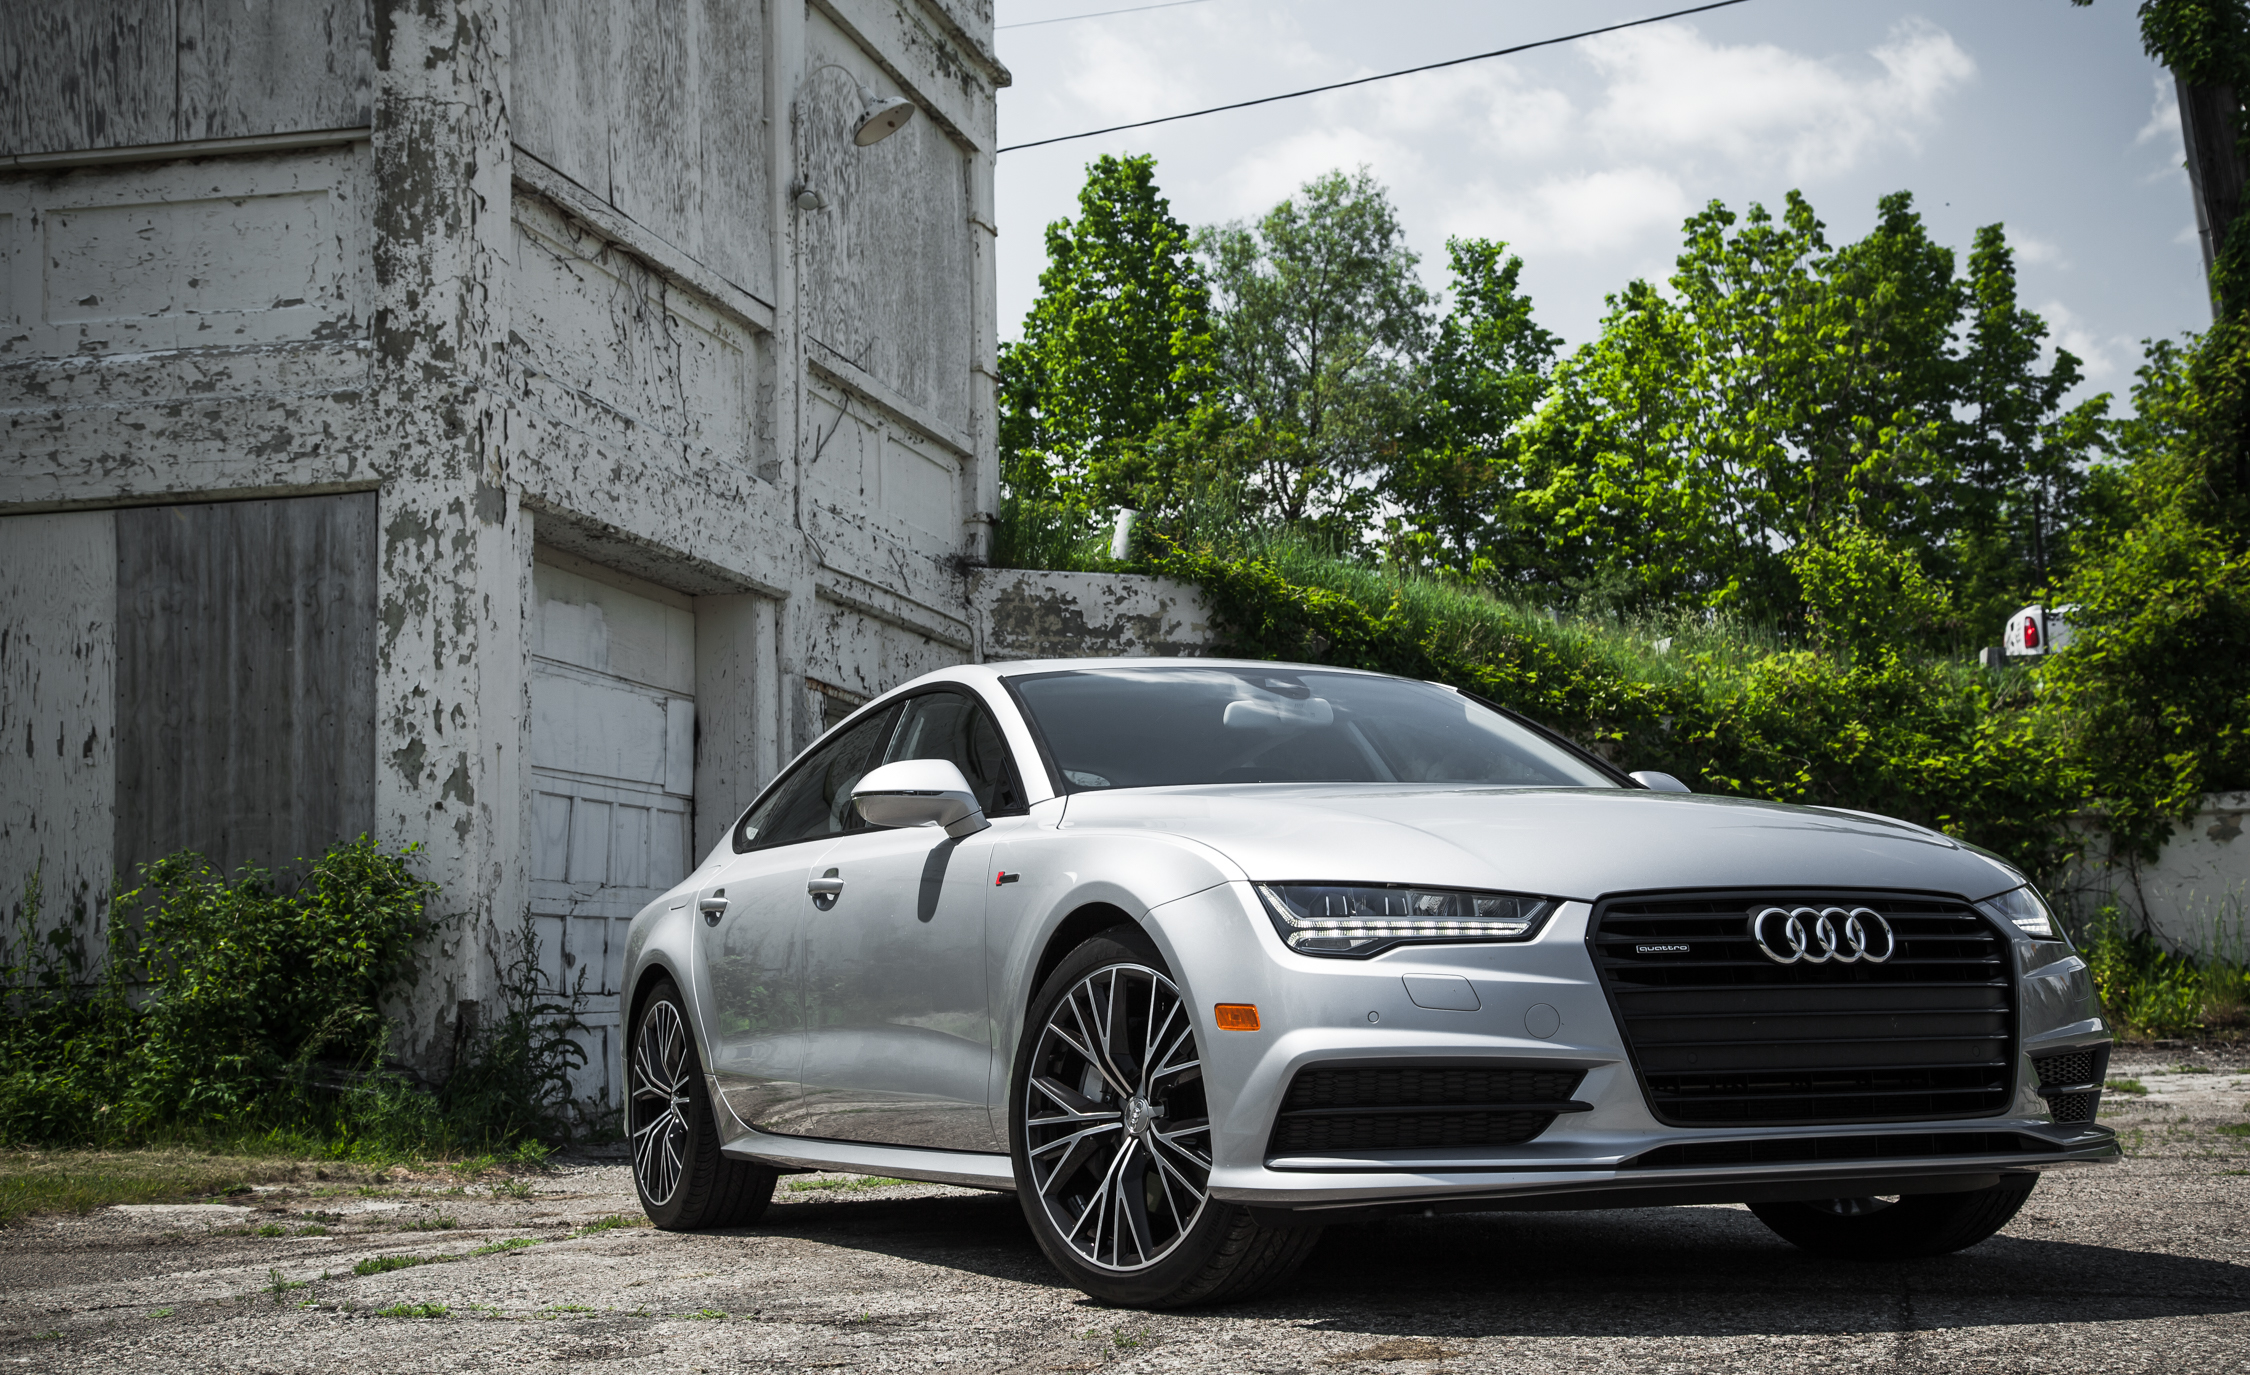 2016 Audi A7 Exterior (View 8 of 26)